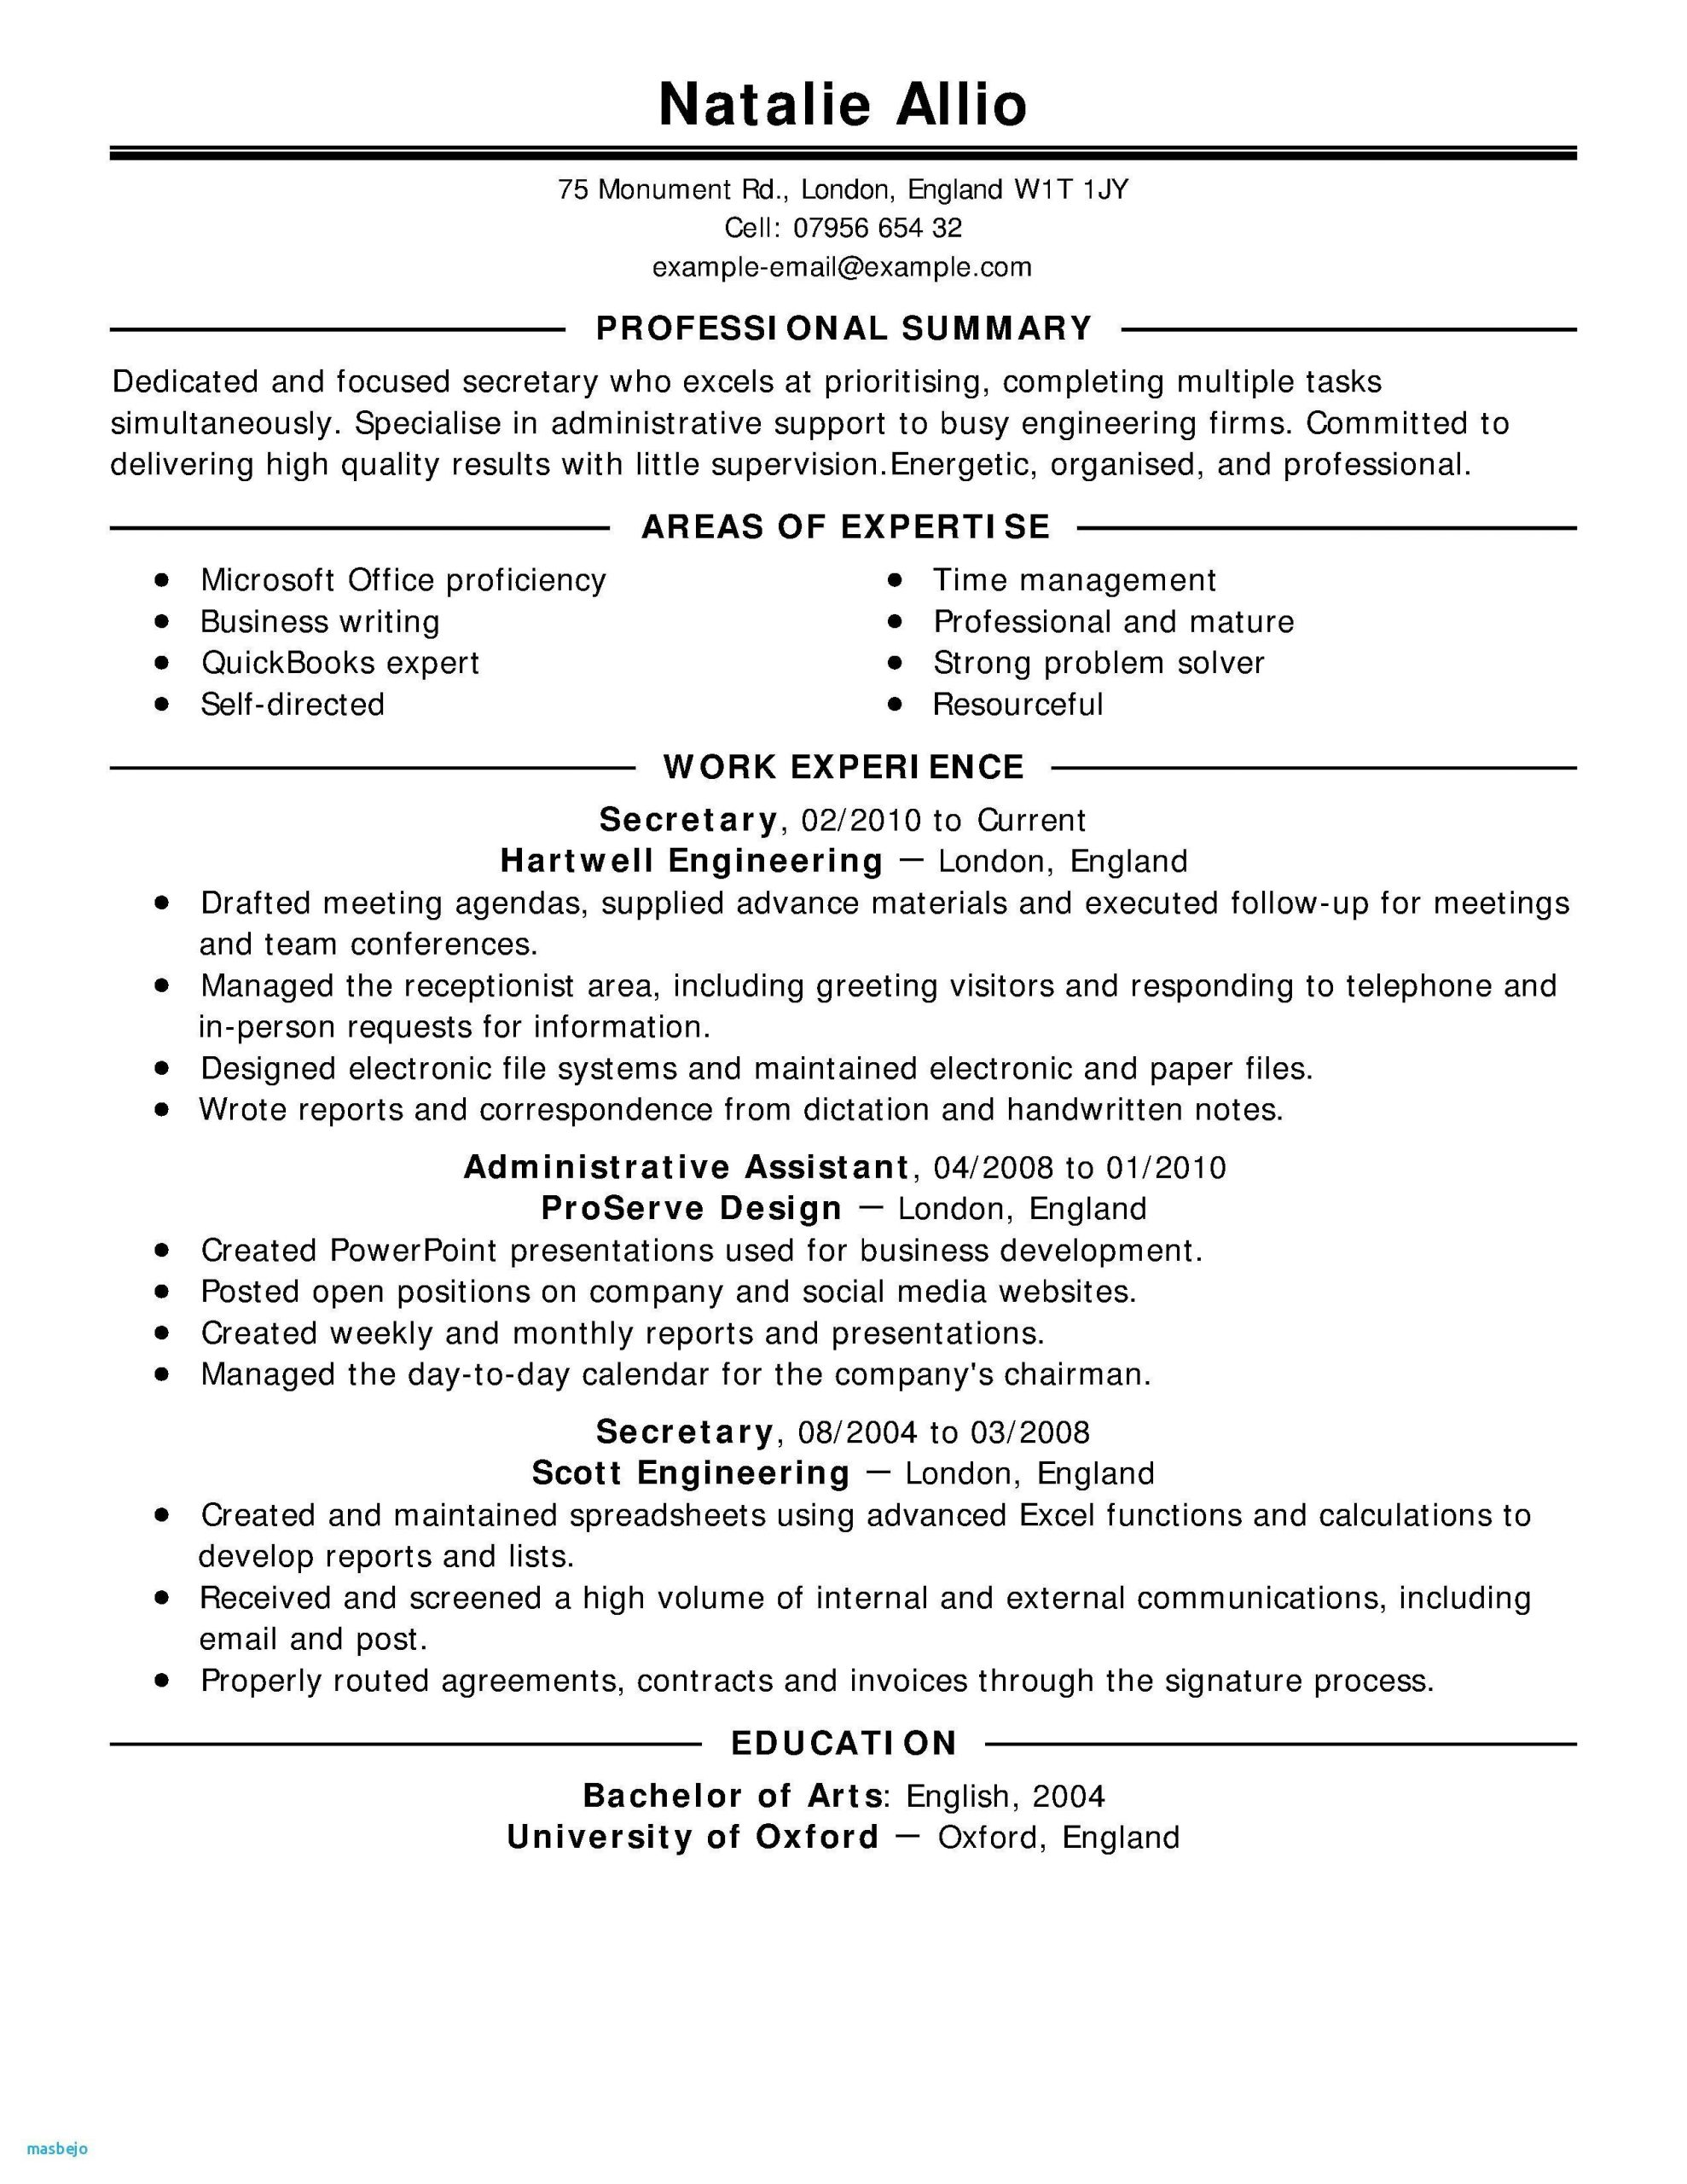 Time Management Skills Resume Awesome New Lvn Skills Resume